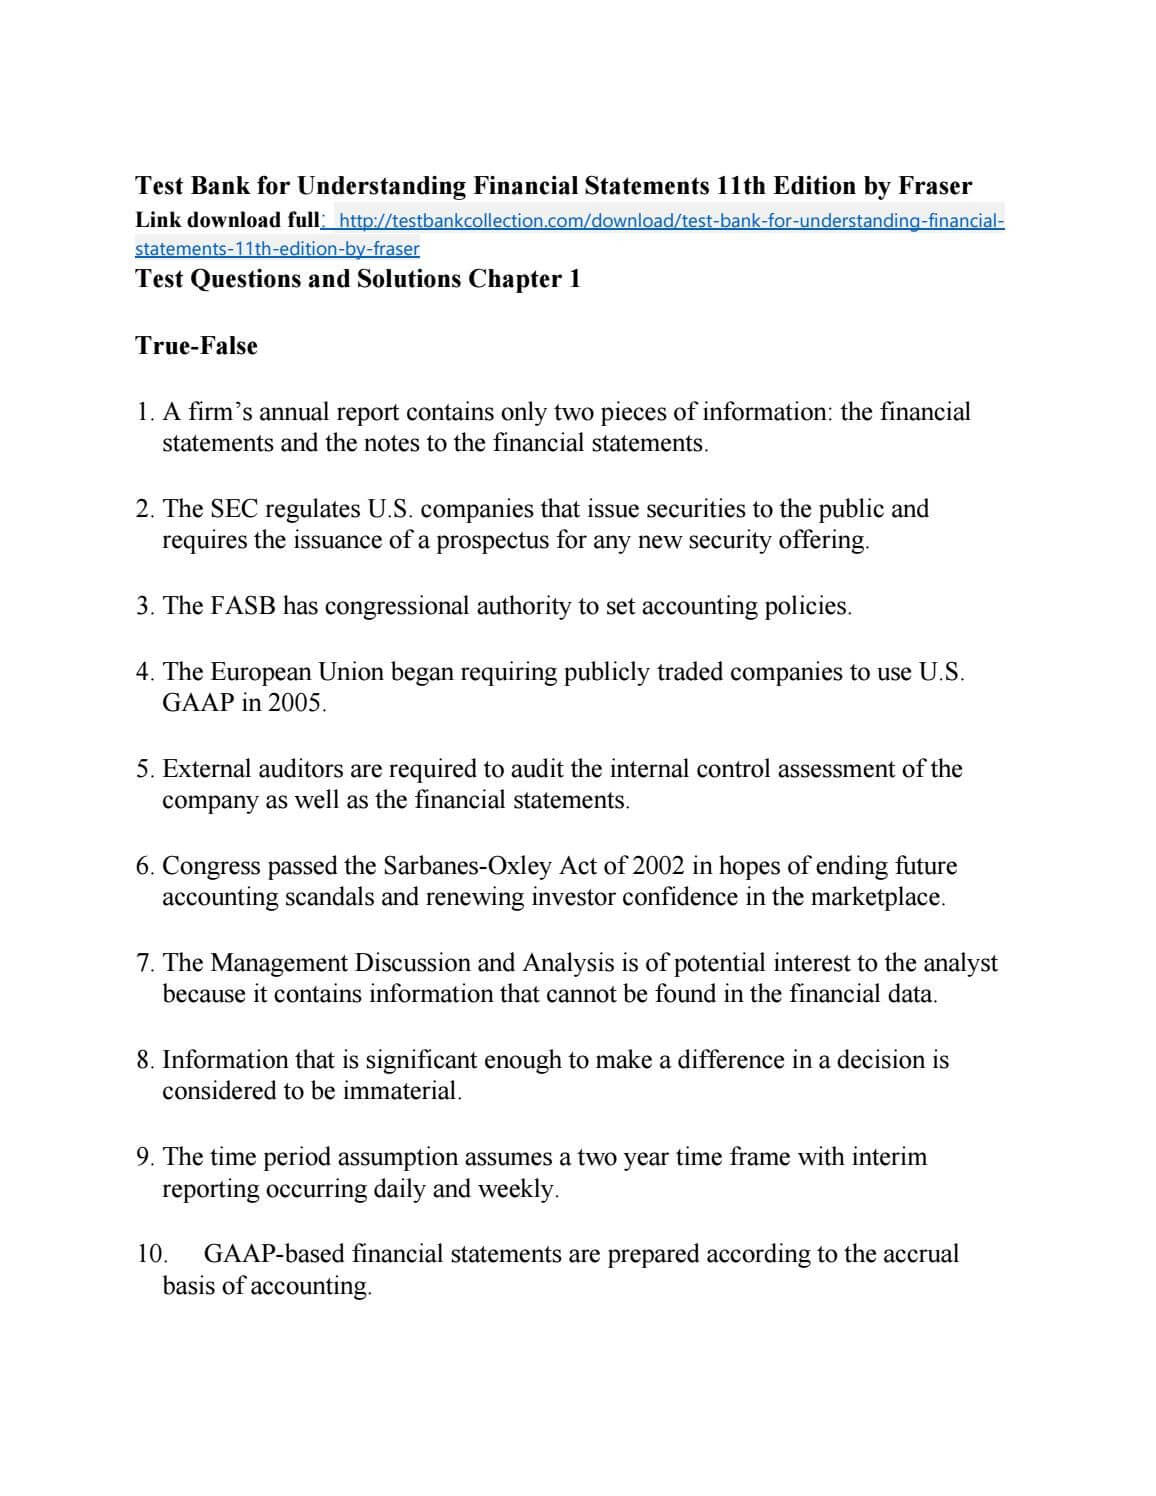 Test Bank For Understanding Financial Statements 11Th Pertaining To Forensic Accounting Report Template